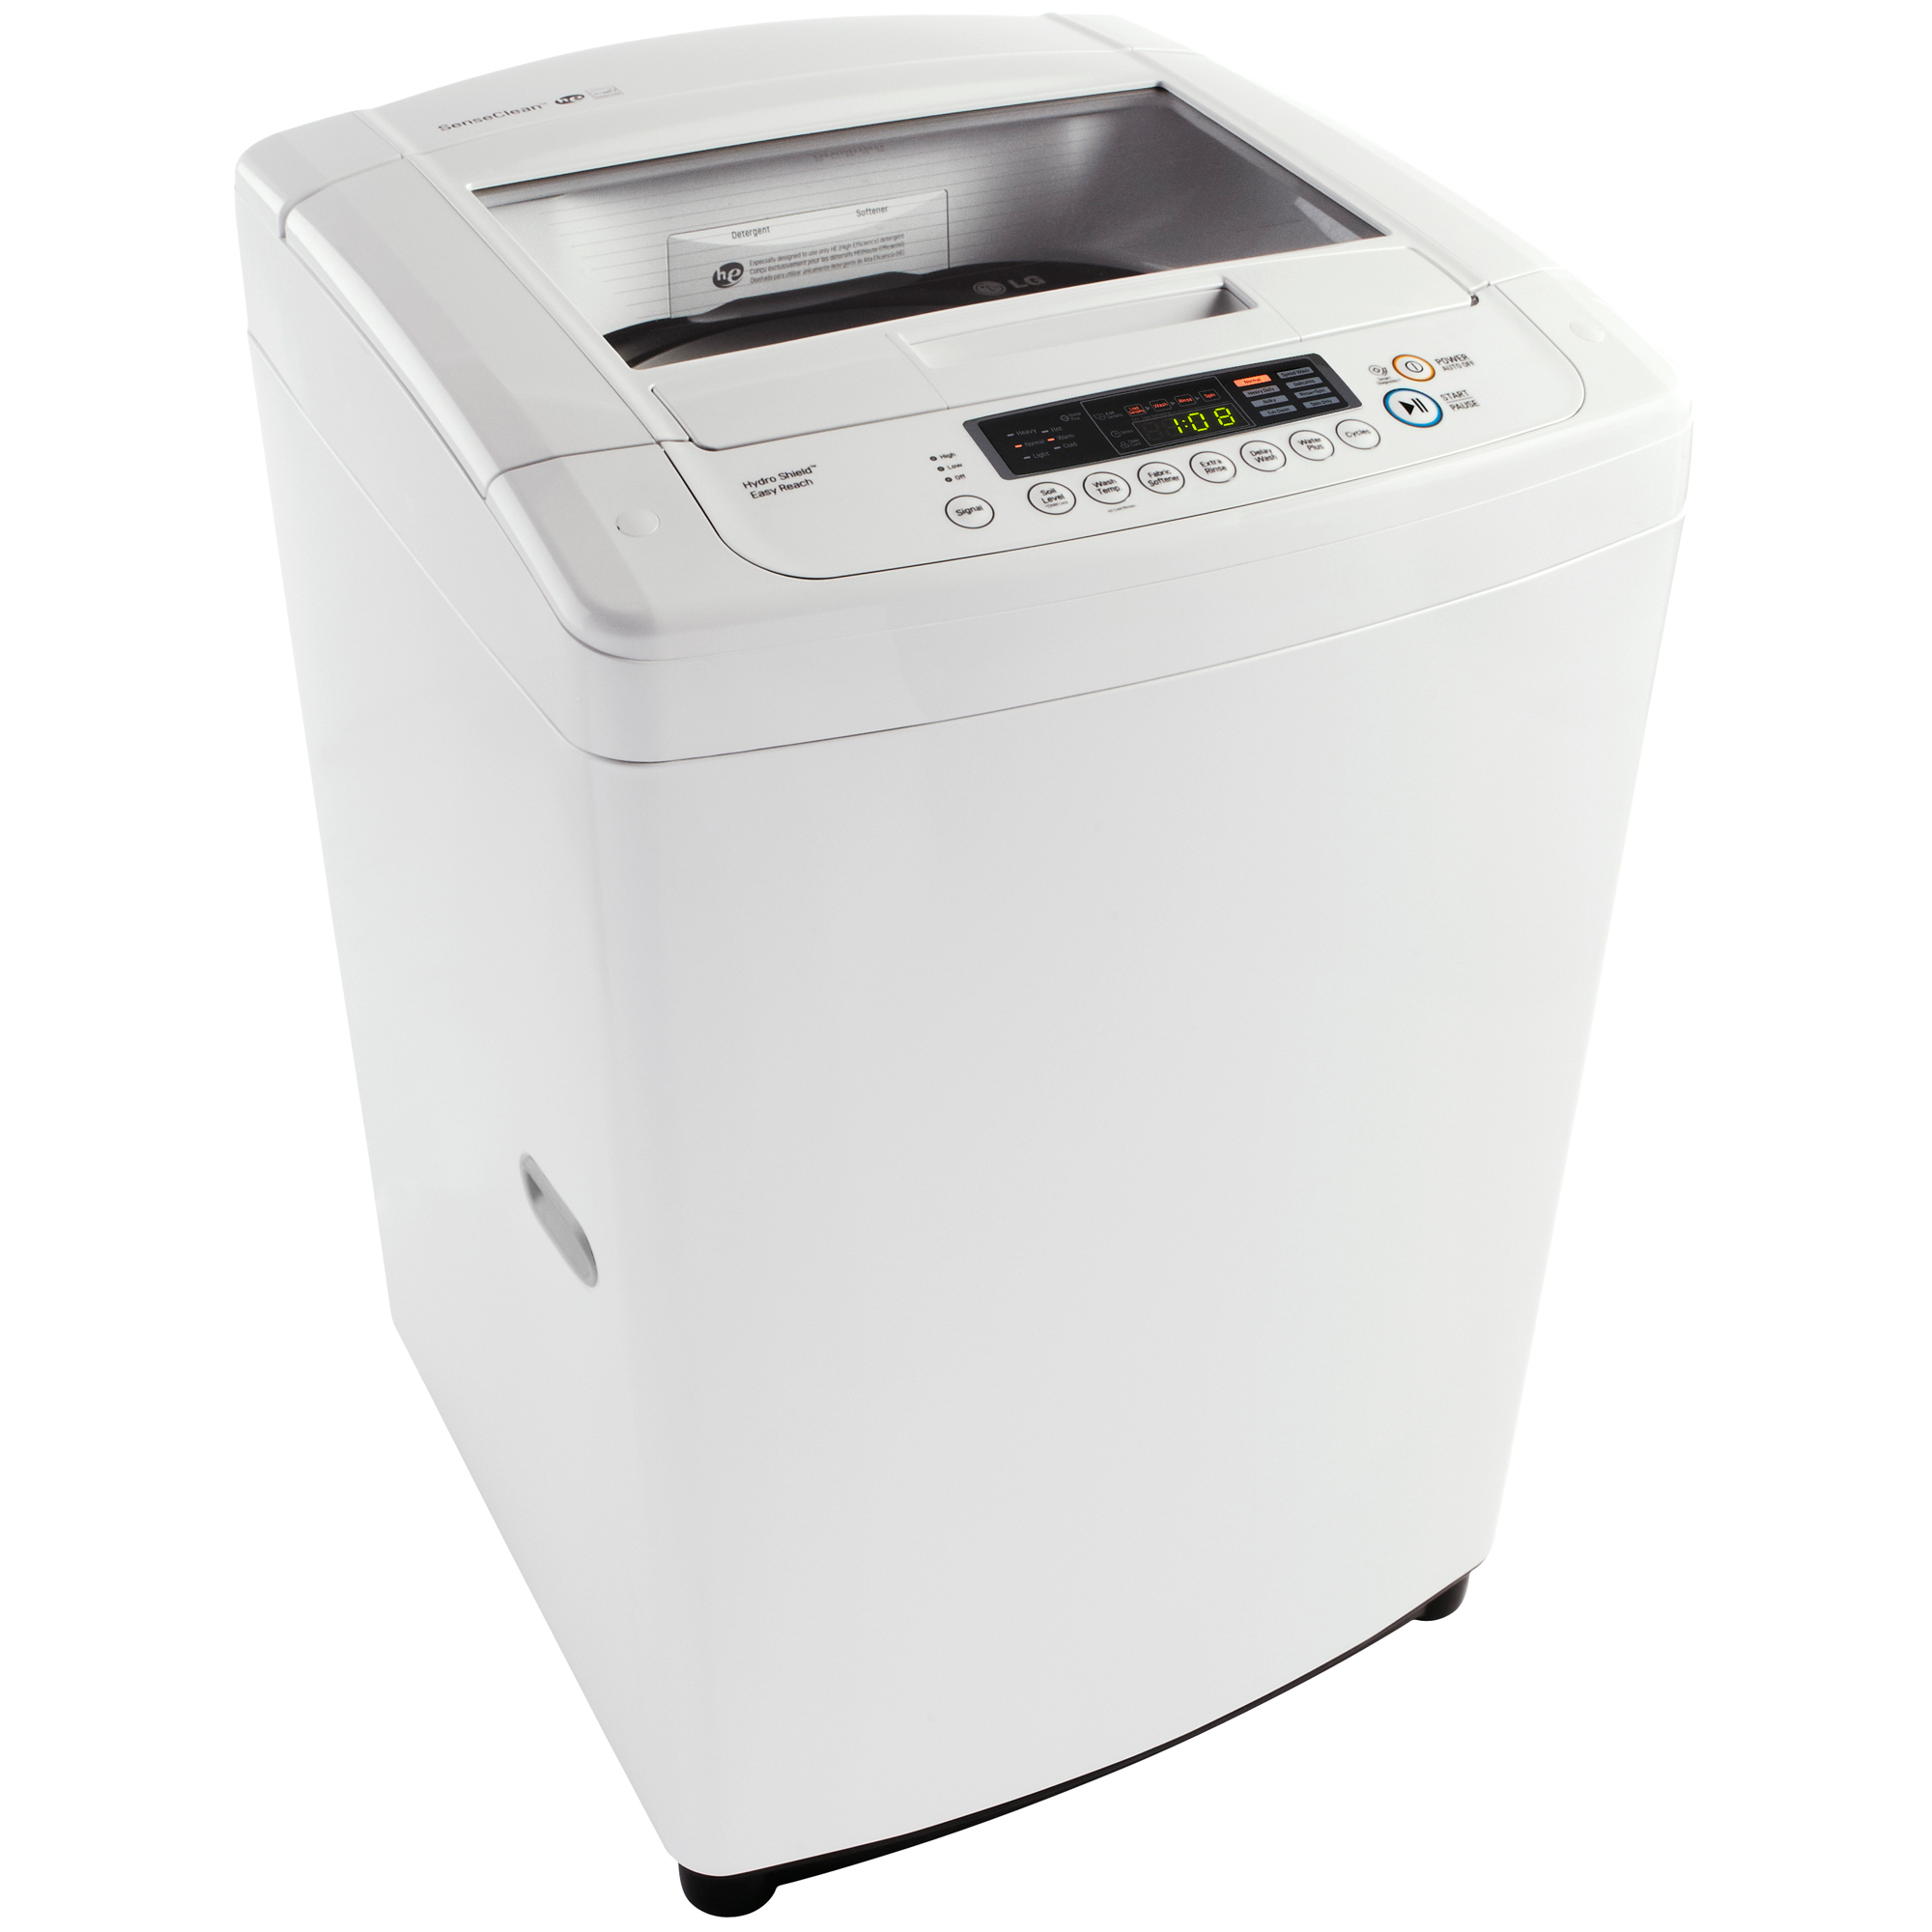 LG WT901CW 3.3 cu. ft. WT901CW Top Load Washer w/ Front Control Design – White